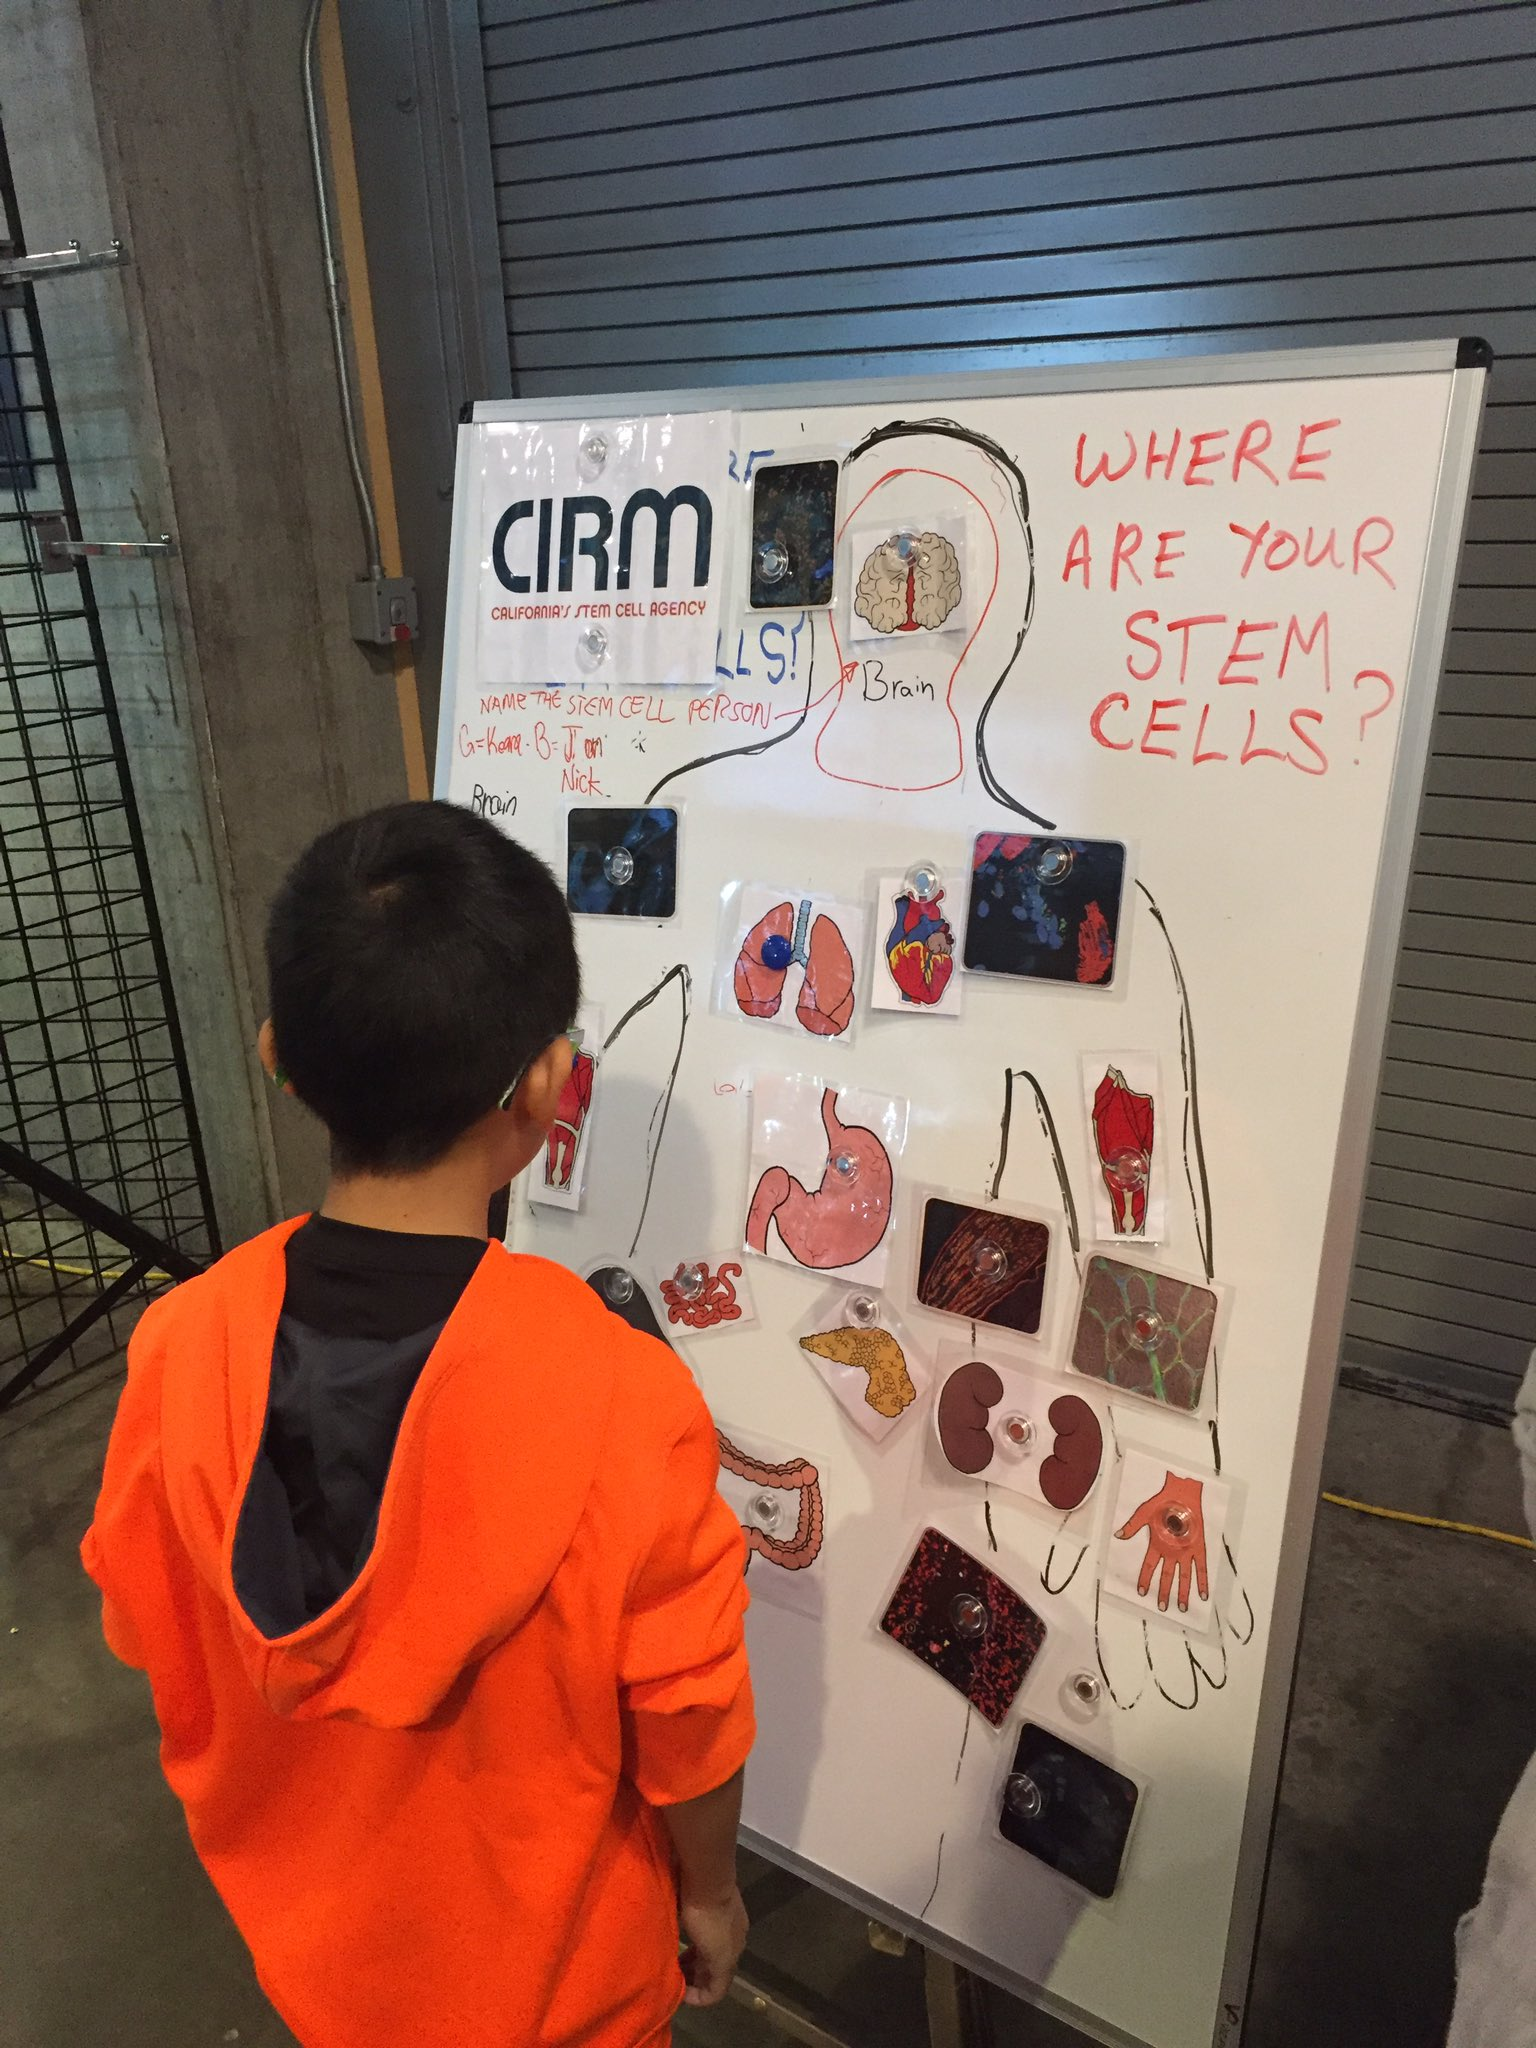 Having fun teaching kids about #stemcells at @bayareascience #DiscoveryDay! @CIRMnews #STEMed https://t.co/IgNyl91fiV